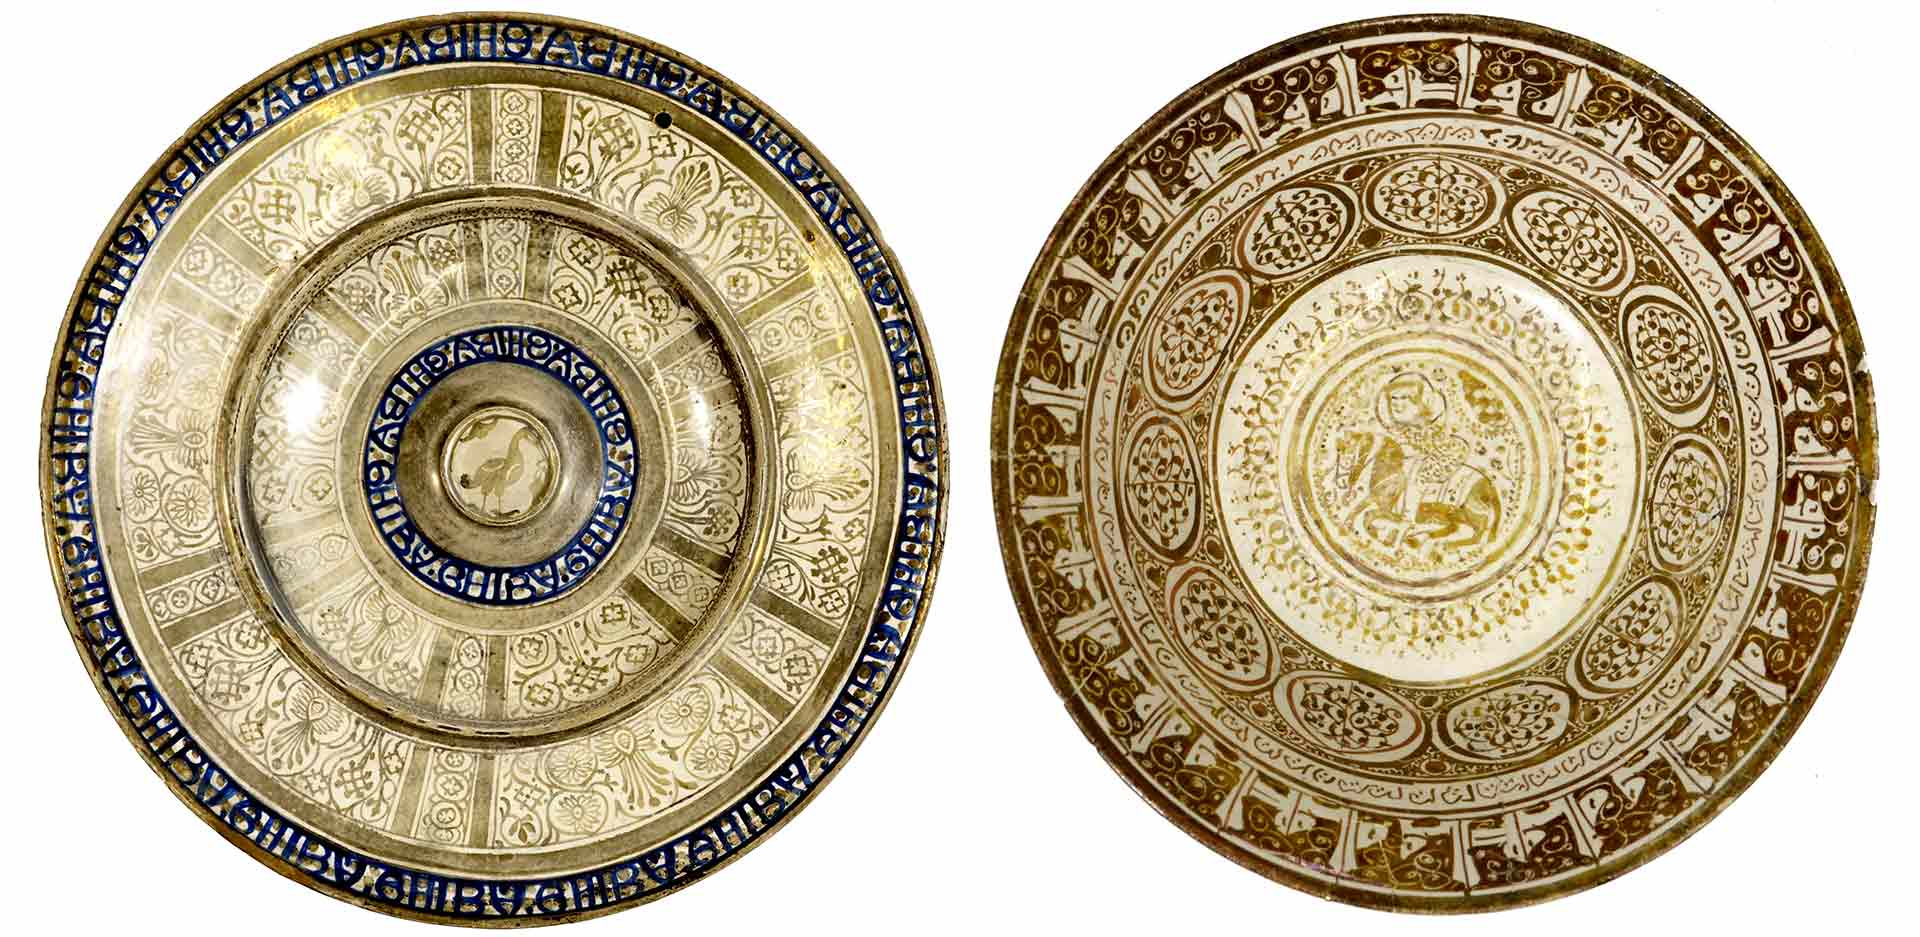 Large plate, Valencia, Spain, first half of the 16th c., lusterware with inscriptions in cobalt blue (left), and bowl with knight illustration, Iran, 13th c. (right), Ludwig Collection